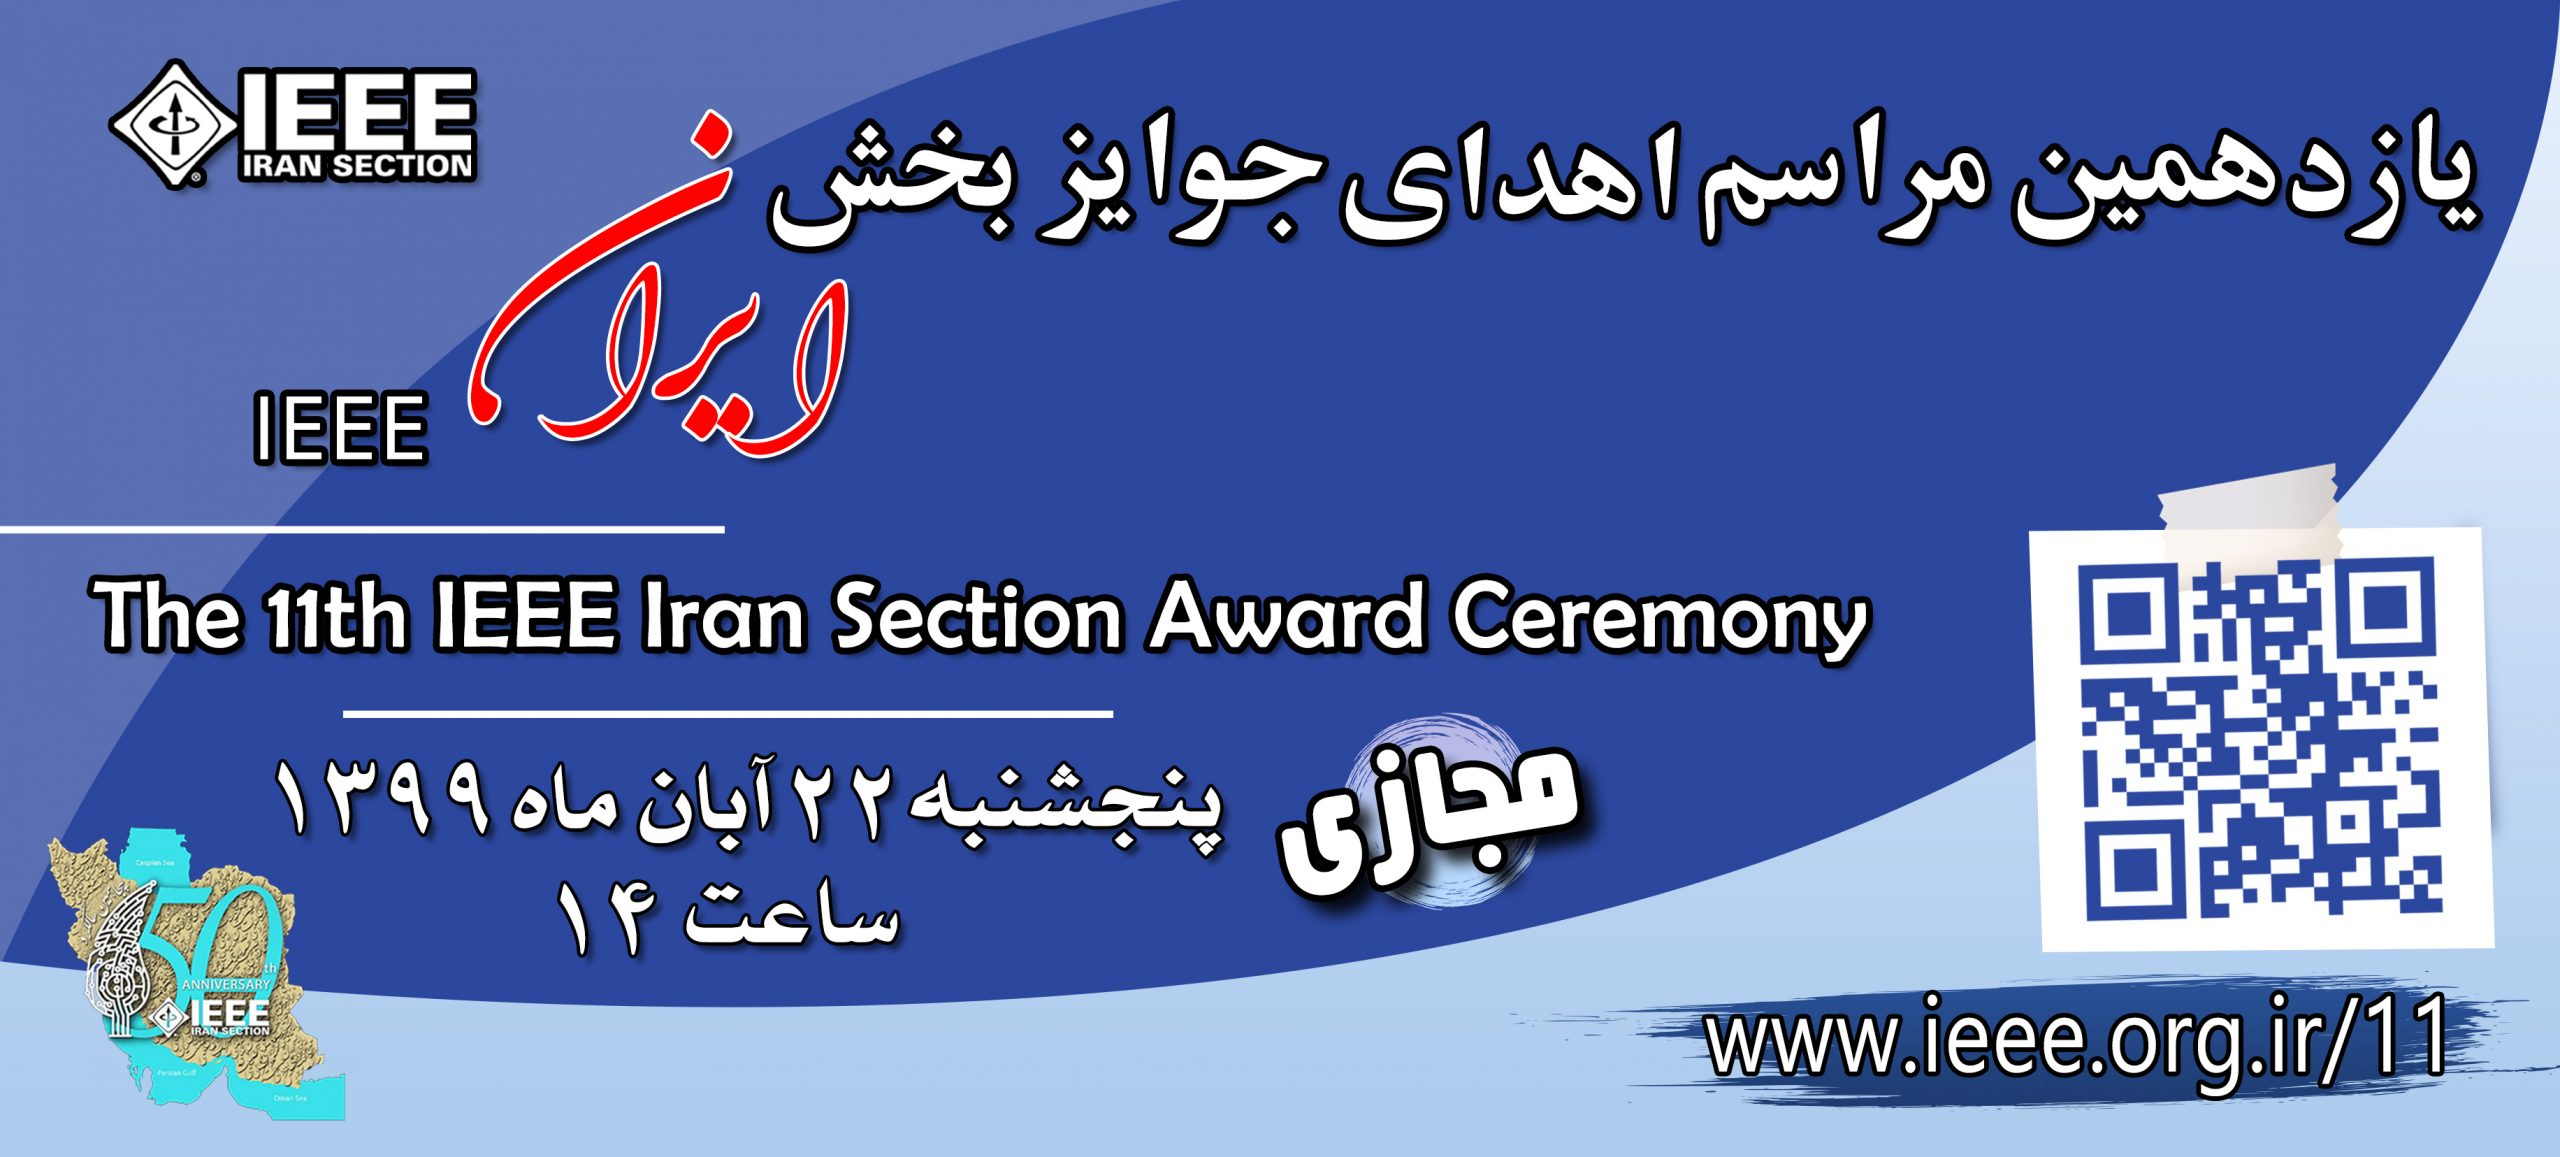 The 11th IEEE Iran Section Award Ceremony